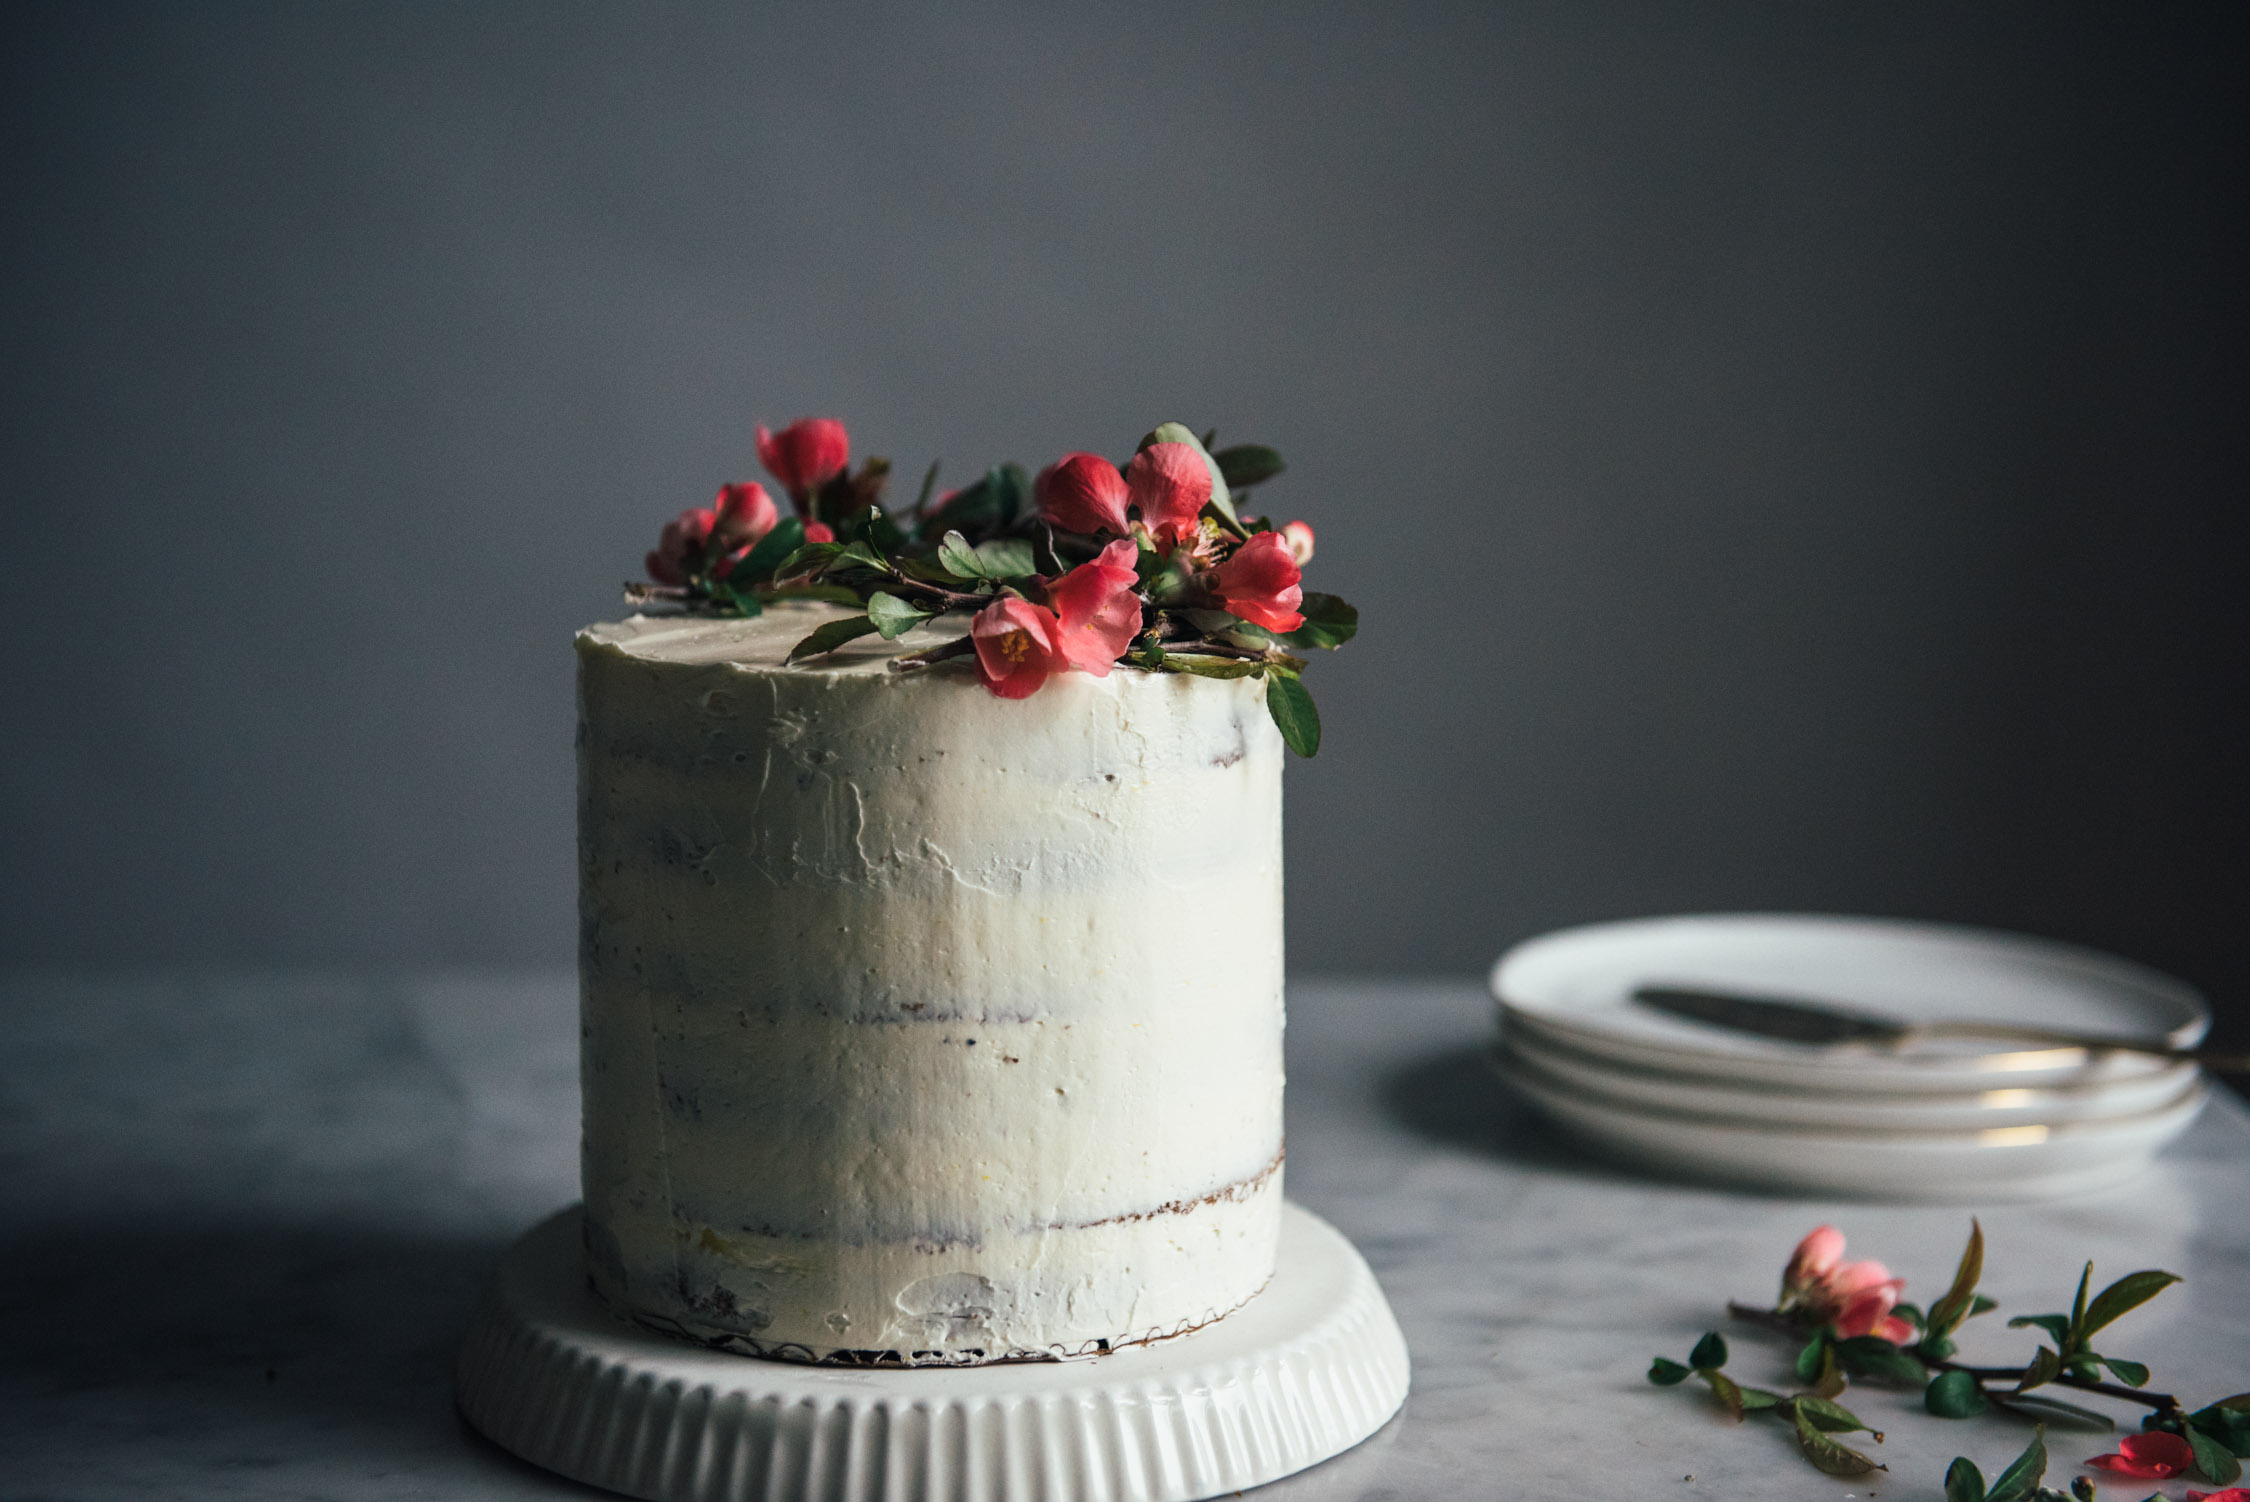 Black Sesame Cake with Citrus Curd